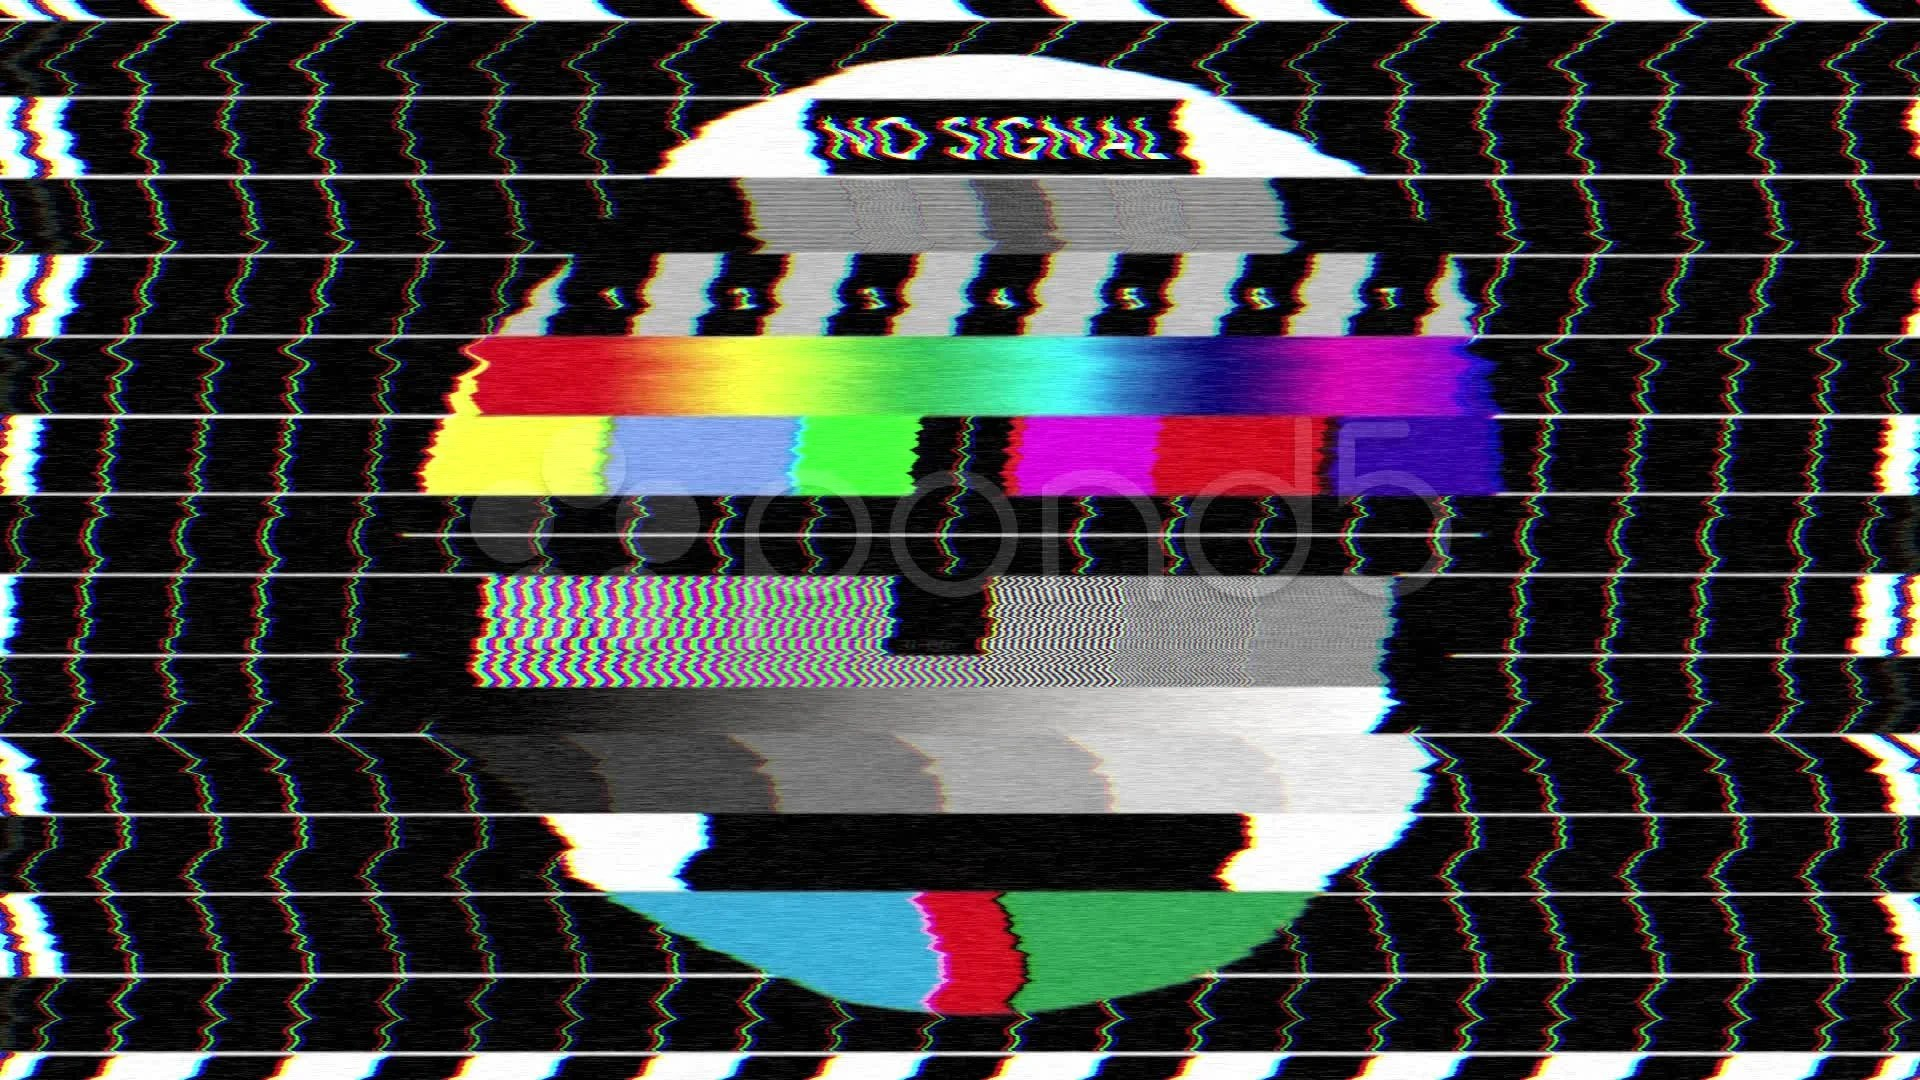 Bad TV Screen I  Static No Signal Noise  Sound  Video